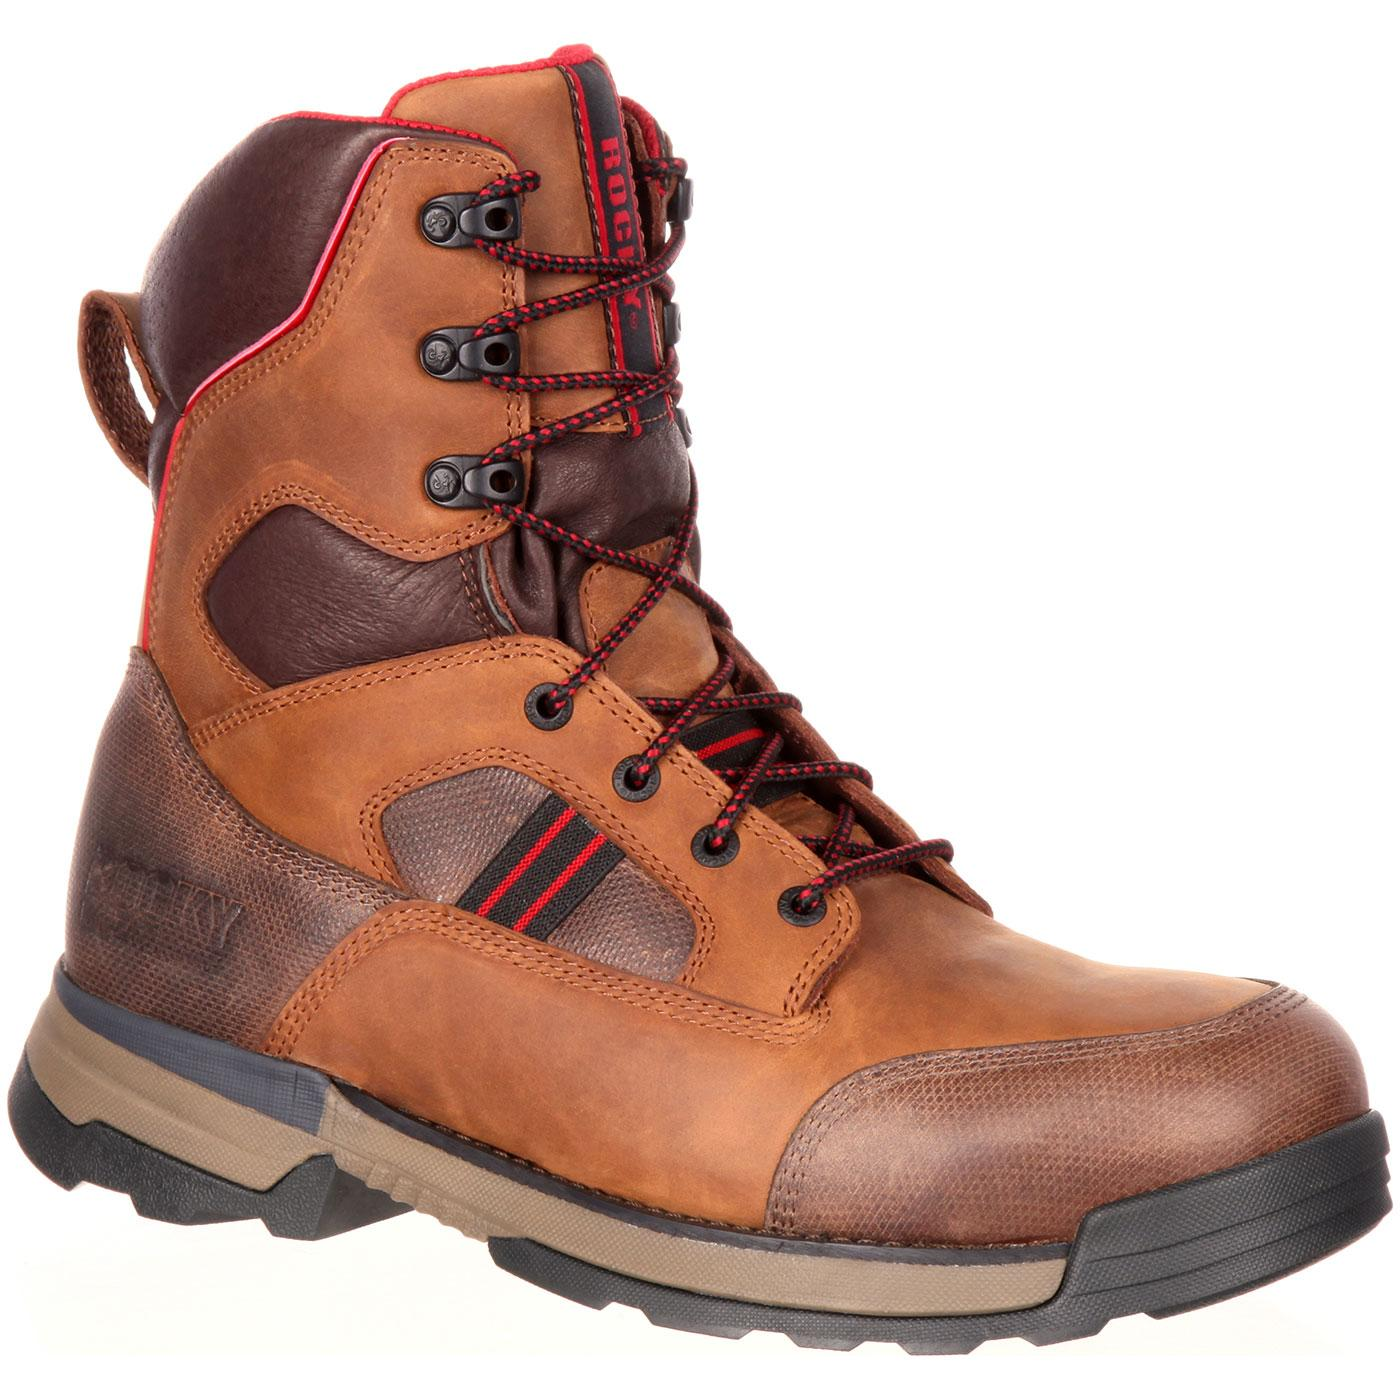 Rocky Mobilwelt: Men's Composite Toe Waterproof Work Boots